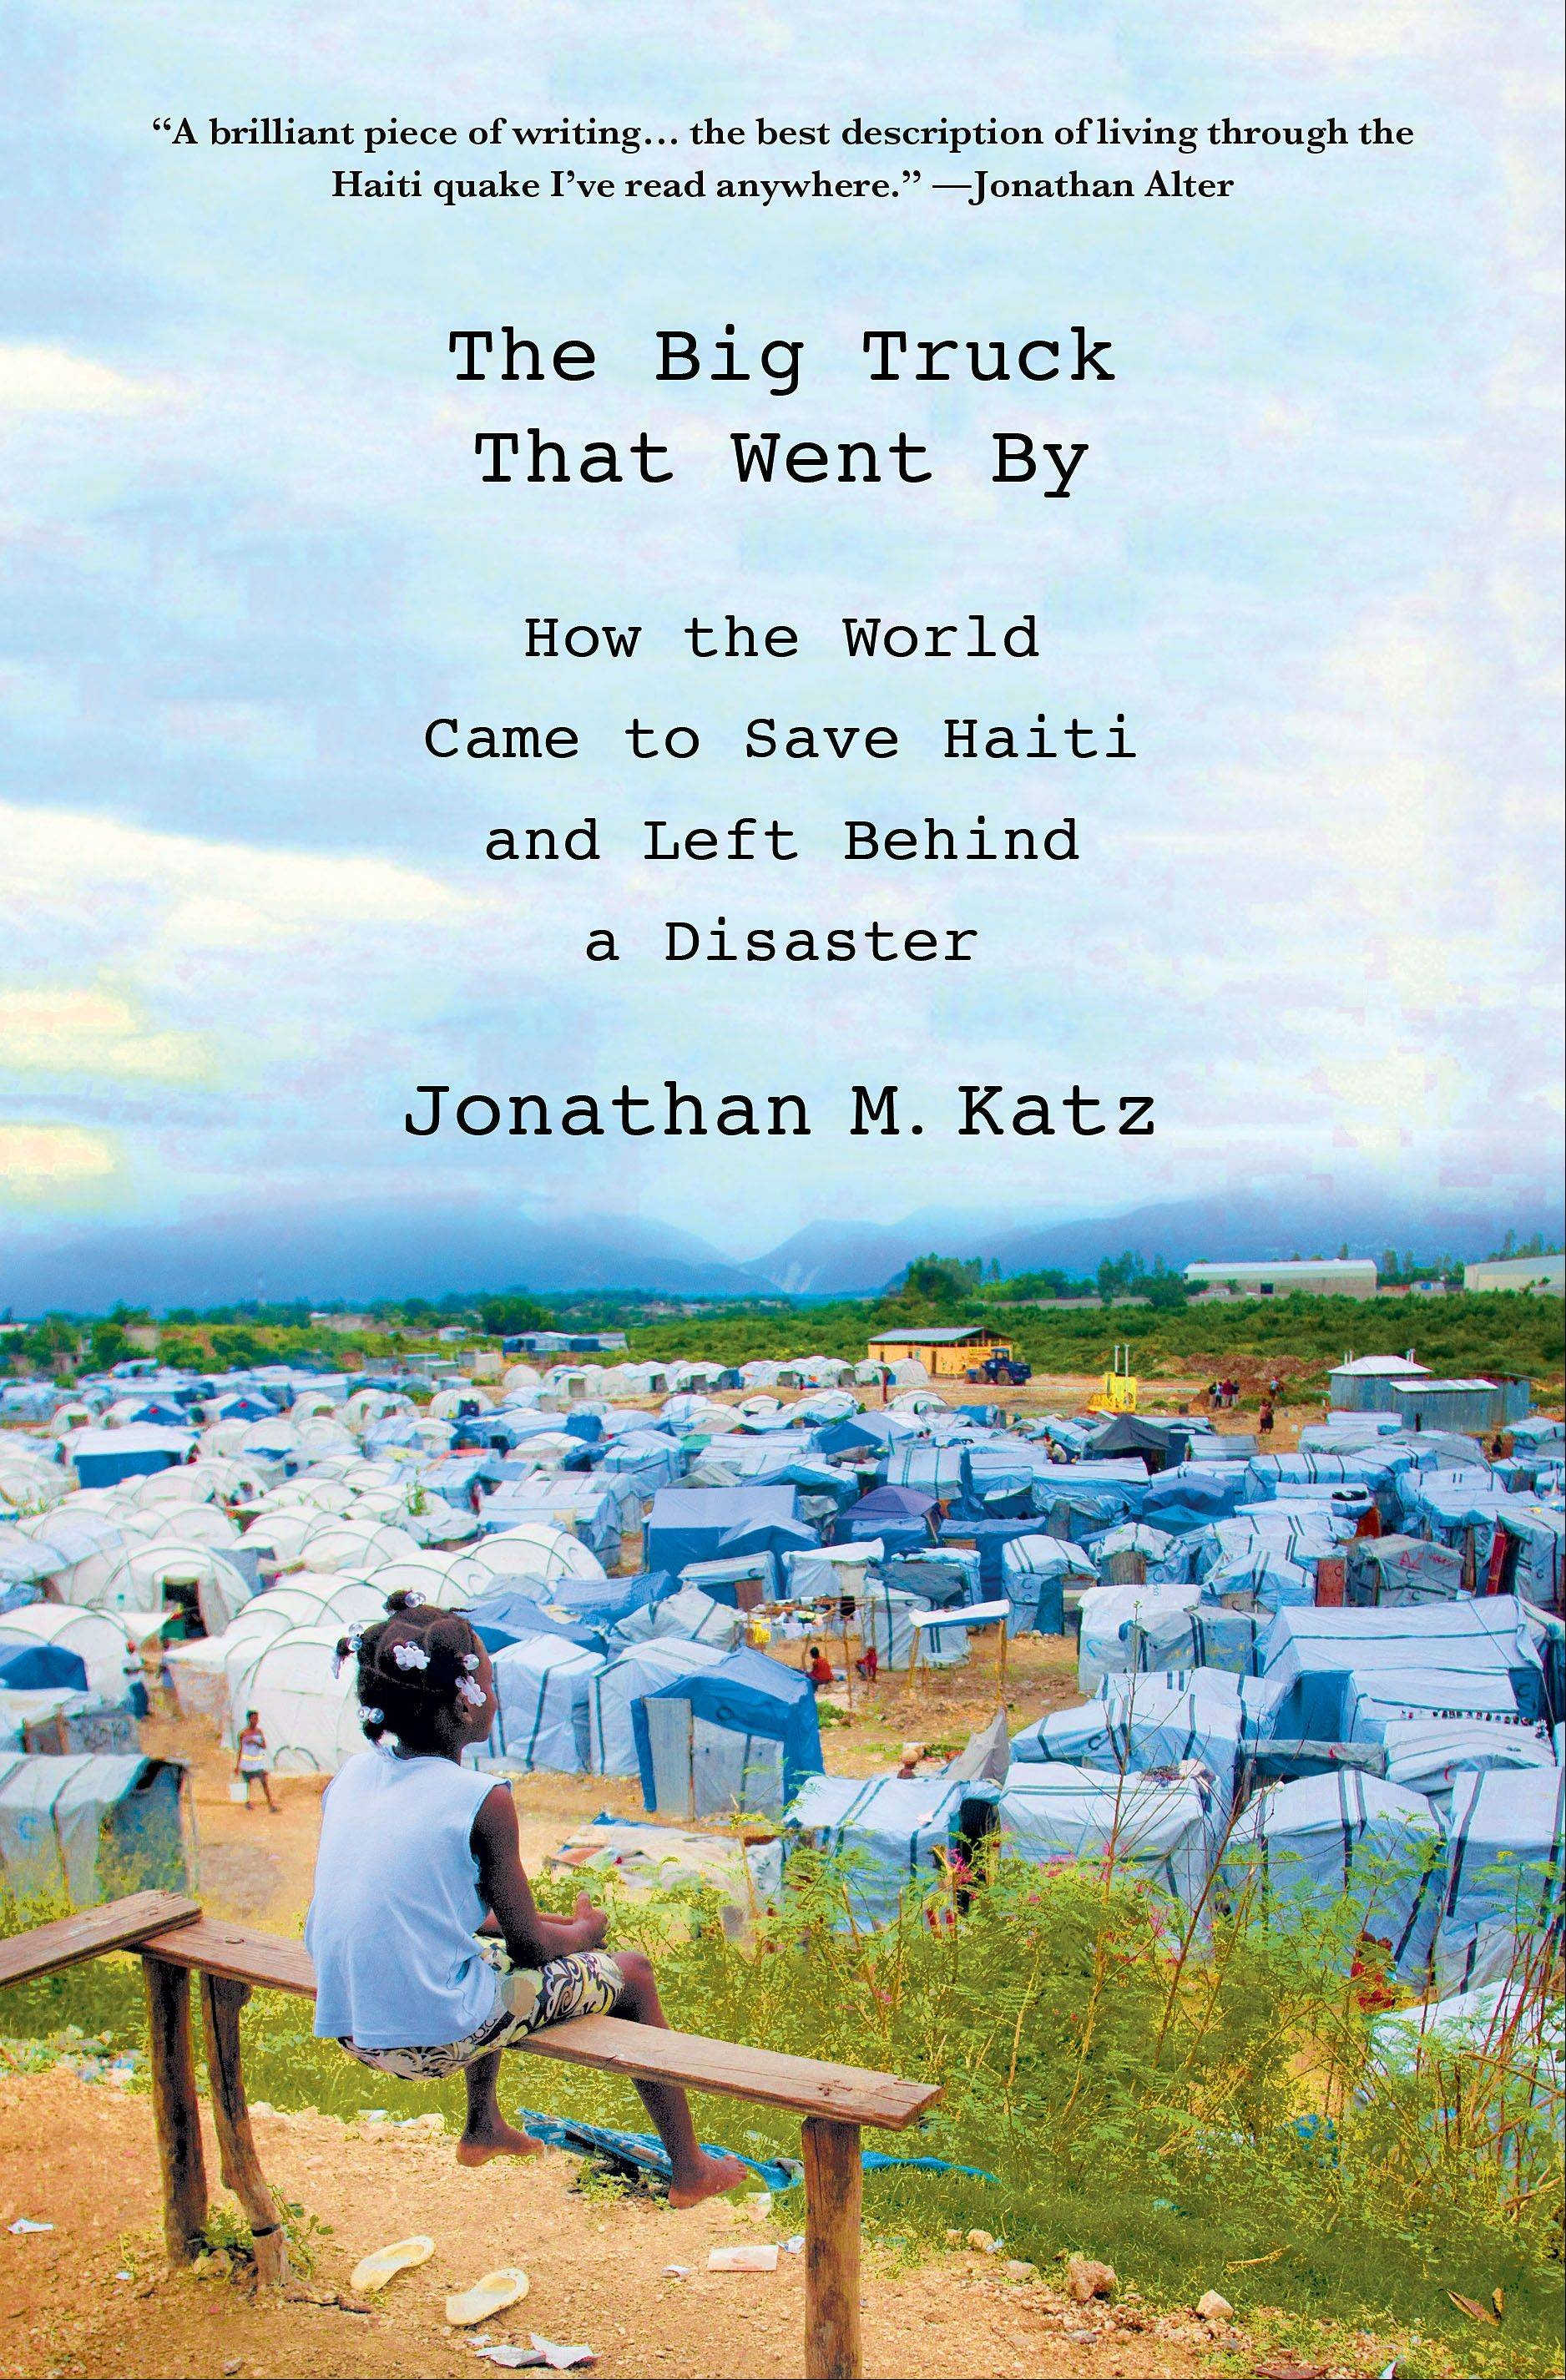 """The Big Truck That Went By: How the World Came to Save Haiti and Left Behind a Disaster"" by Jonathan M. Katz"